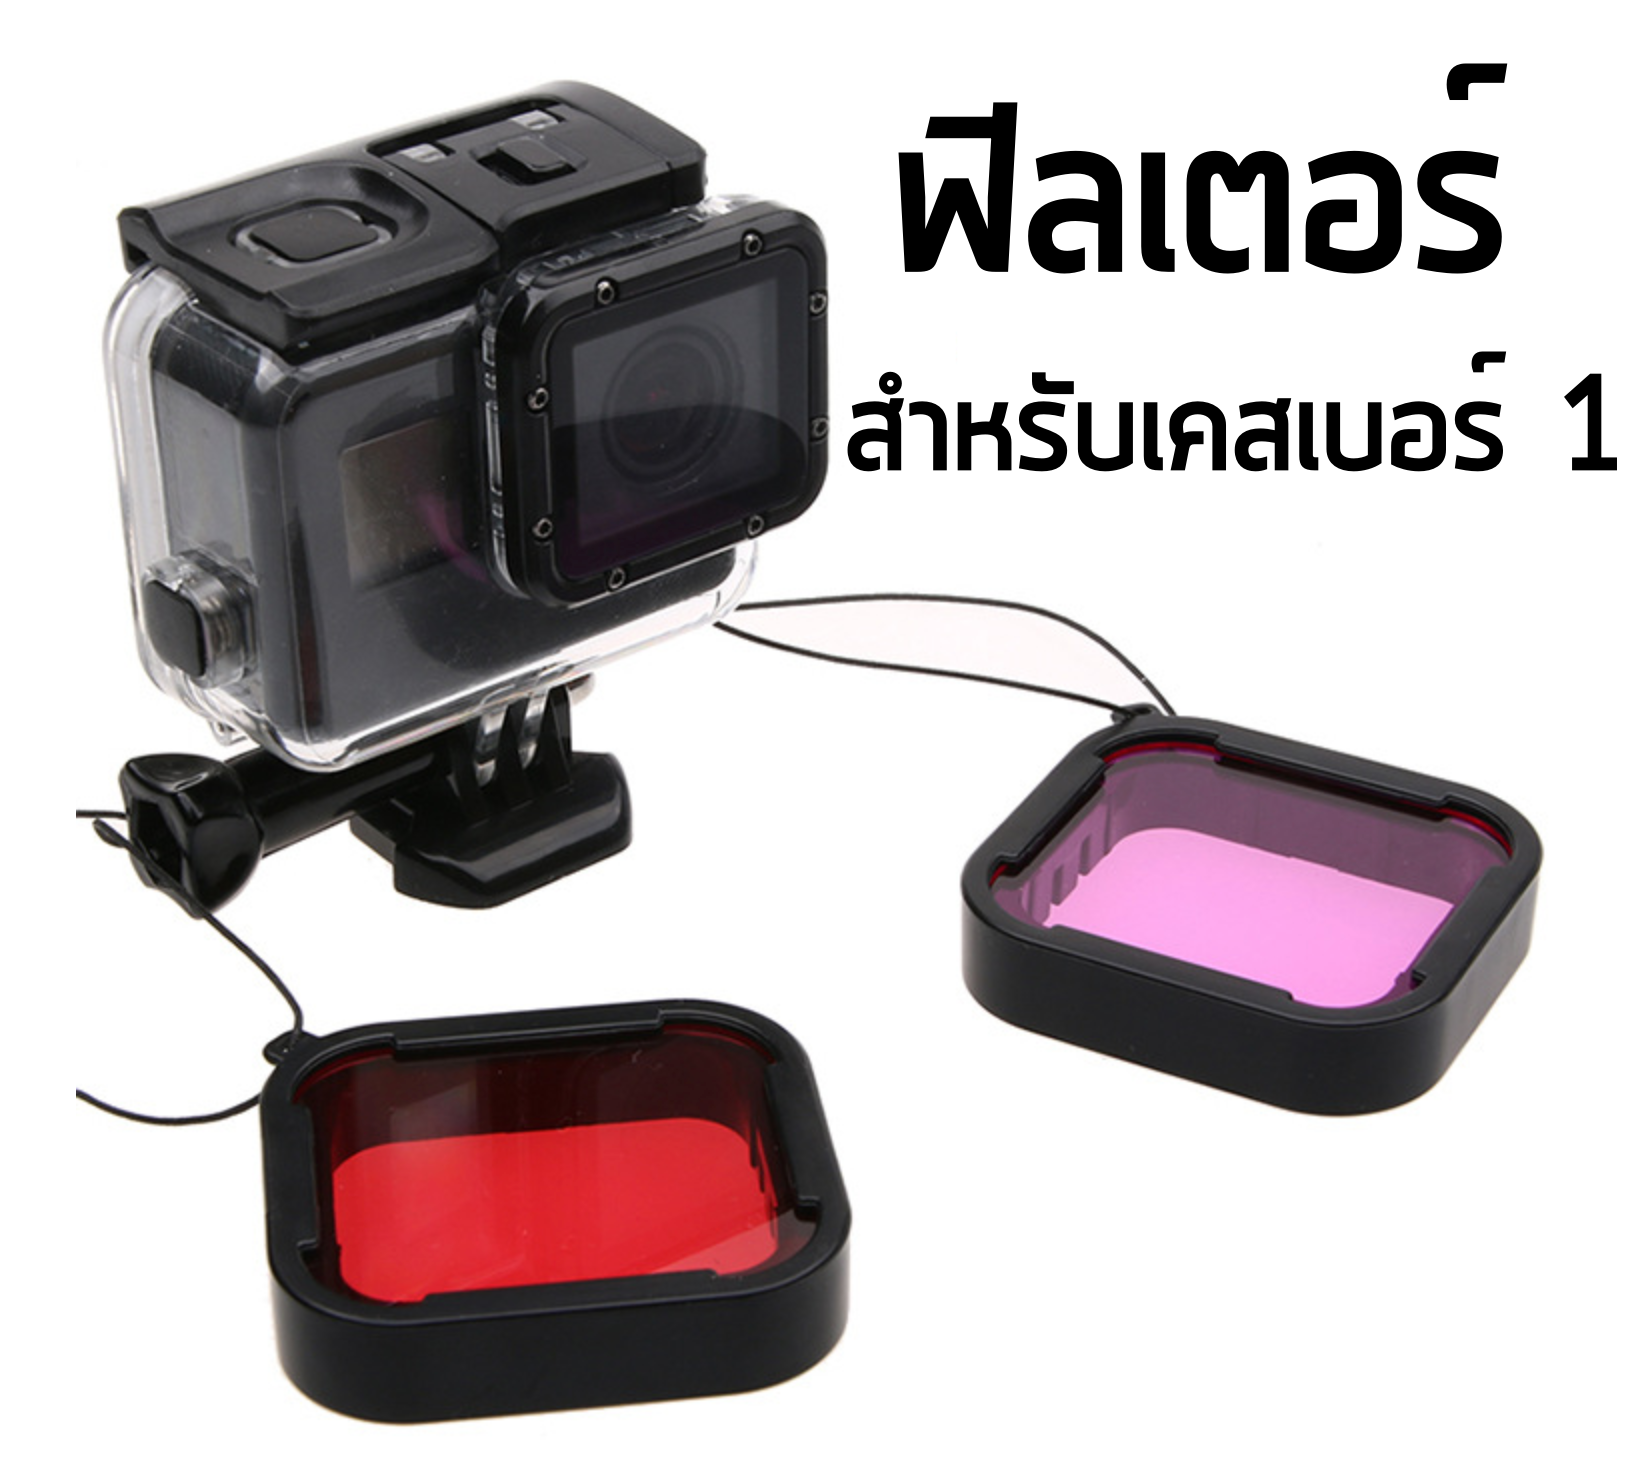 Filter Red and Magenta For Super suit Gopro5/6/hero 2018